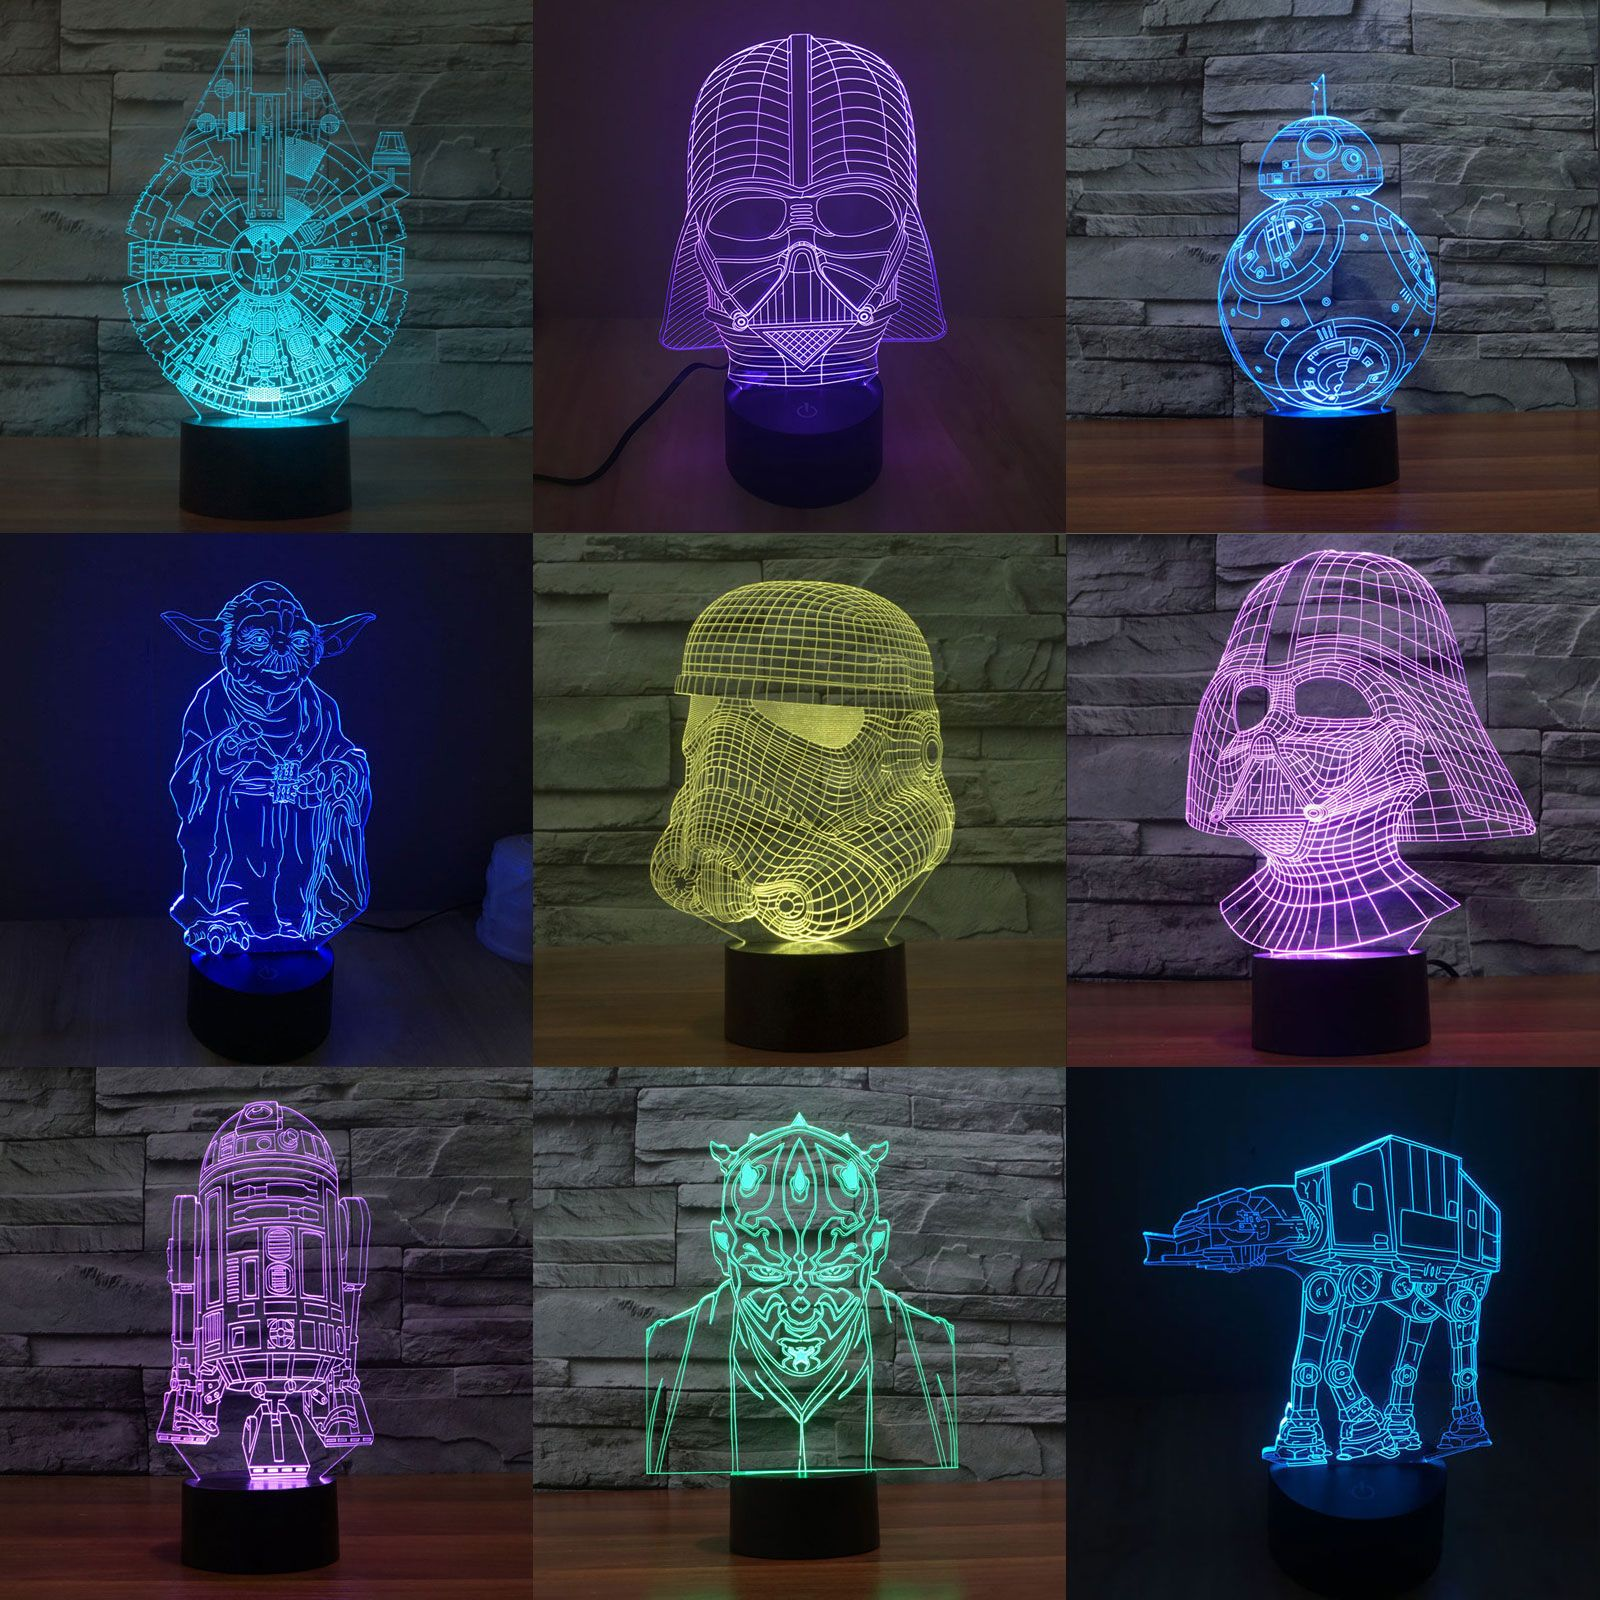 Led night light kickstarter - 7 Color Change 3d Illusion Star Wars Touch Switch Table Lamp Led Night Light New